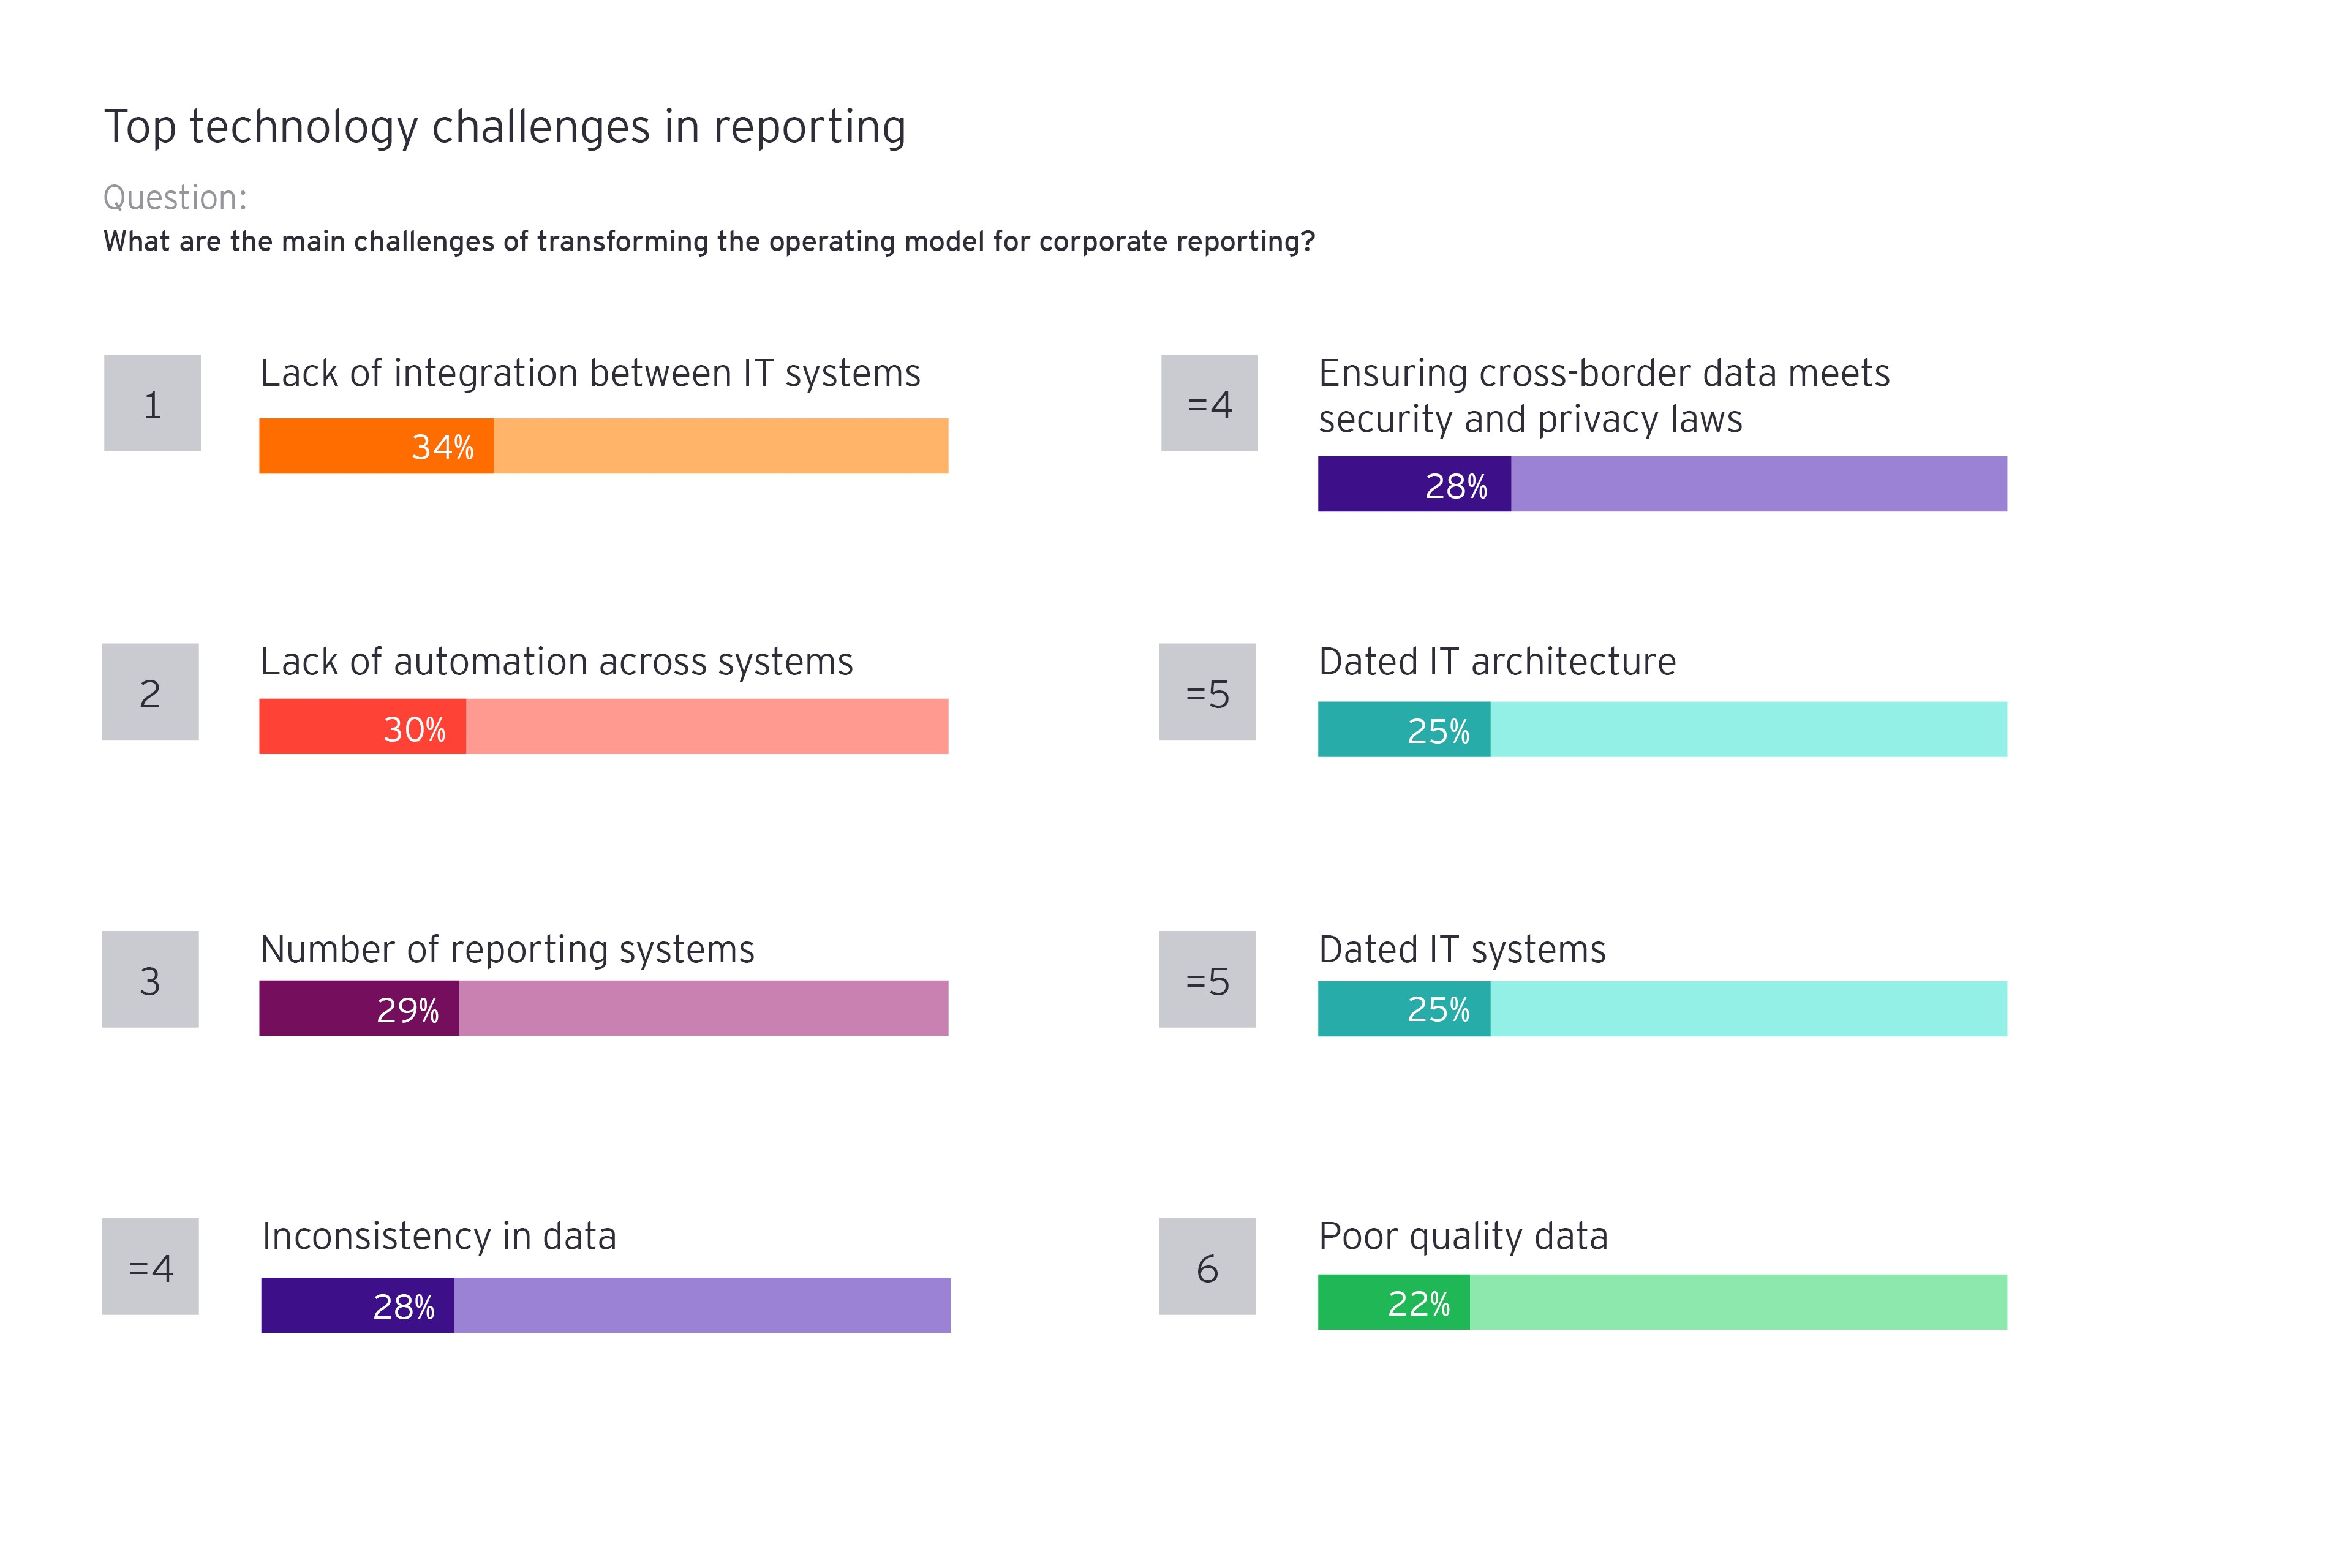 Top technology challenges in reporting